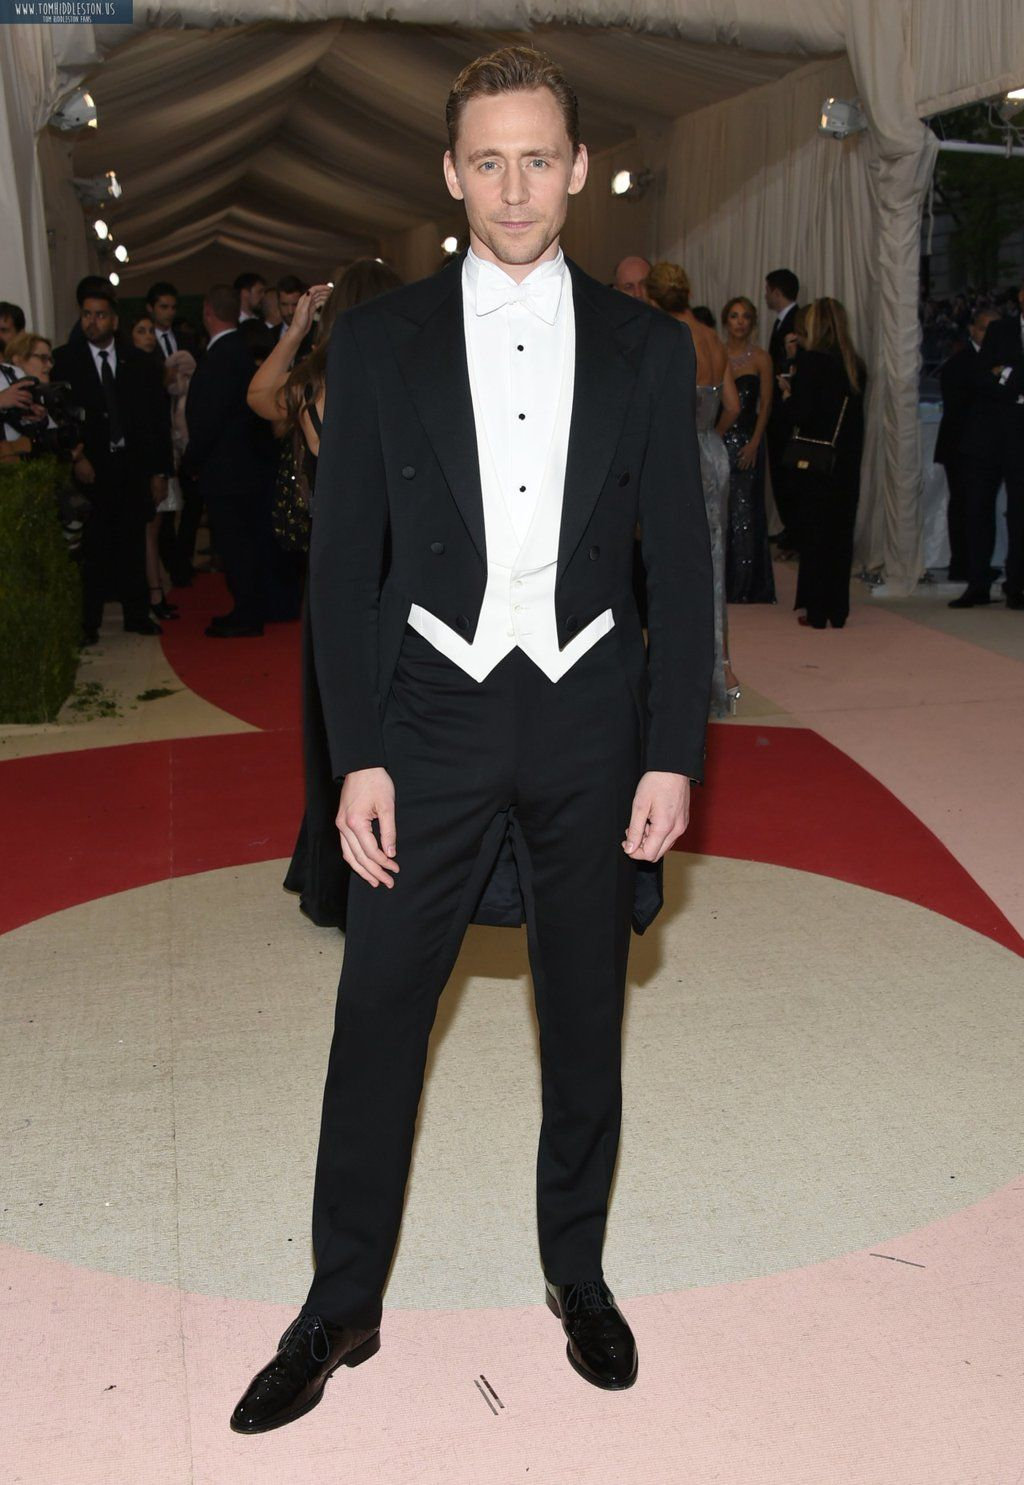 Tom Hiddleston. #MetGala Via Twitter.